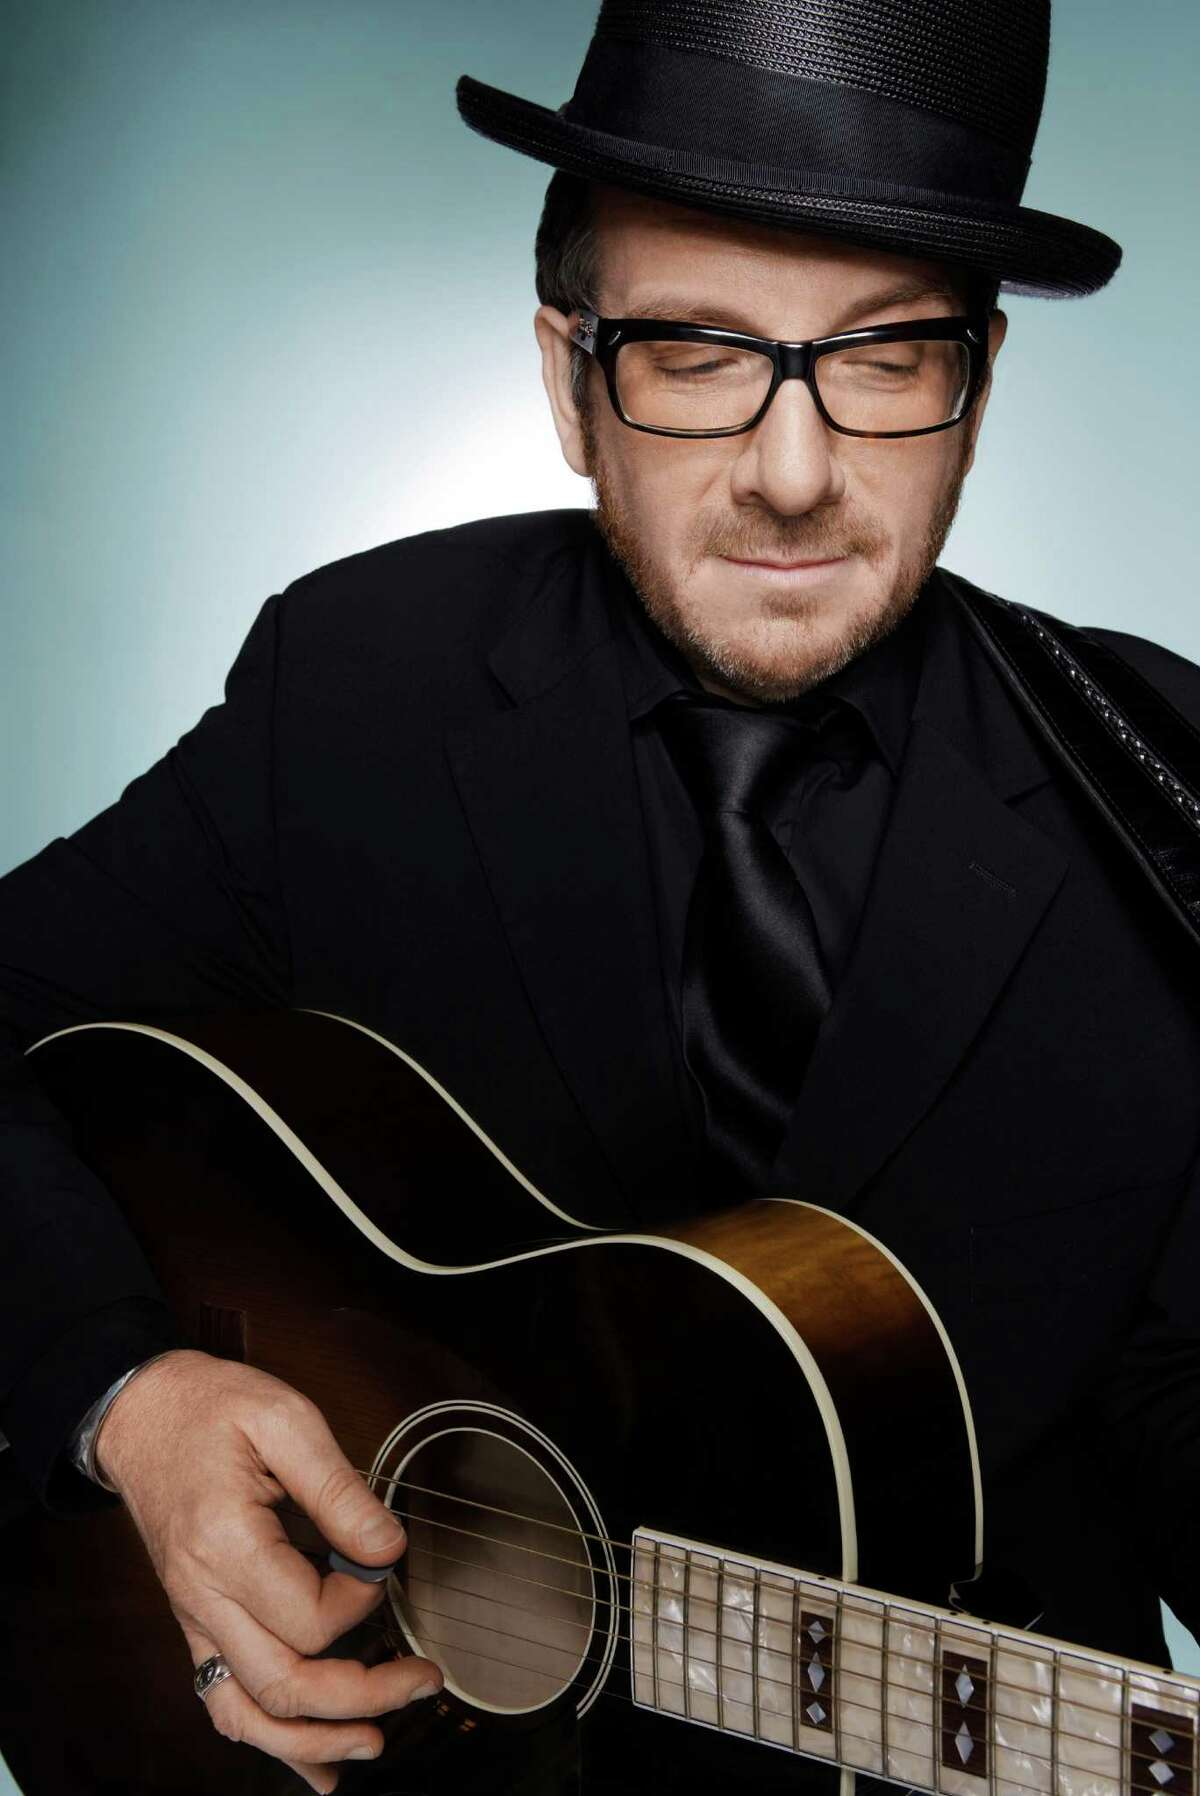 Elvis Costello Declan McManus wasn't going to sell records with that name, so more than 40 years ago, he changed it.